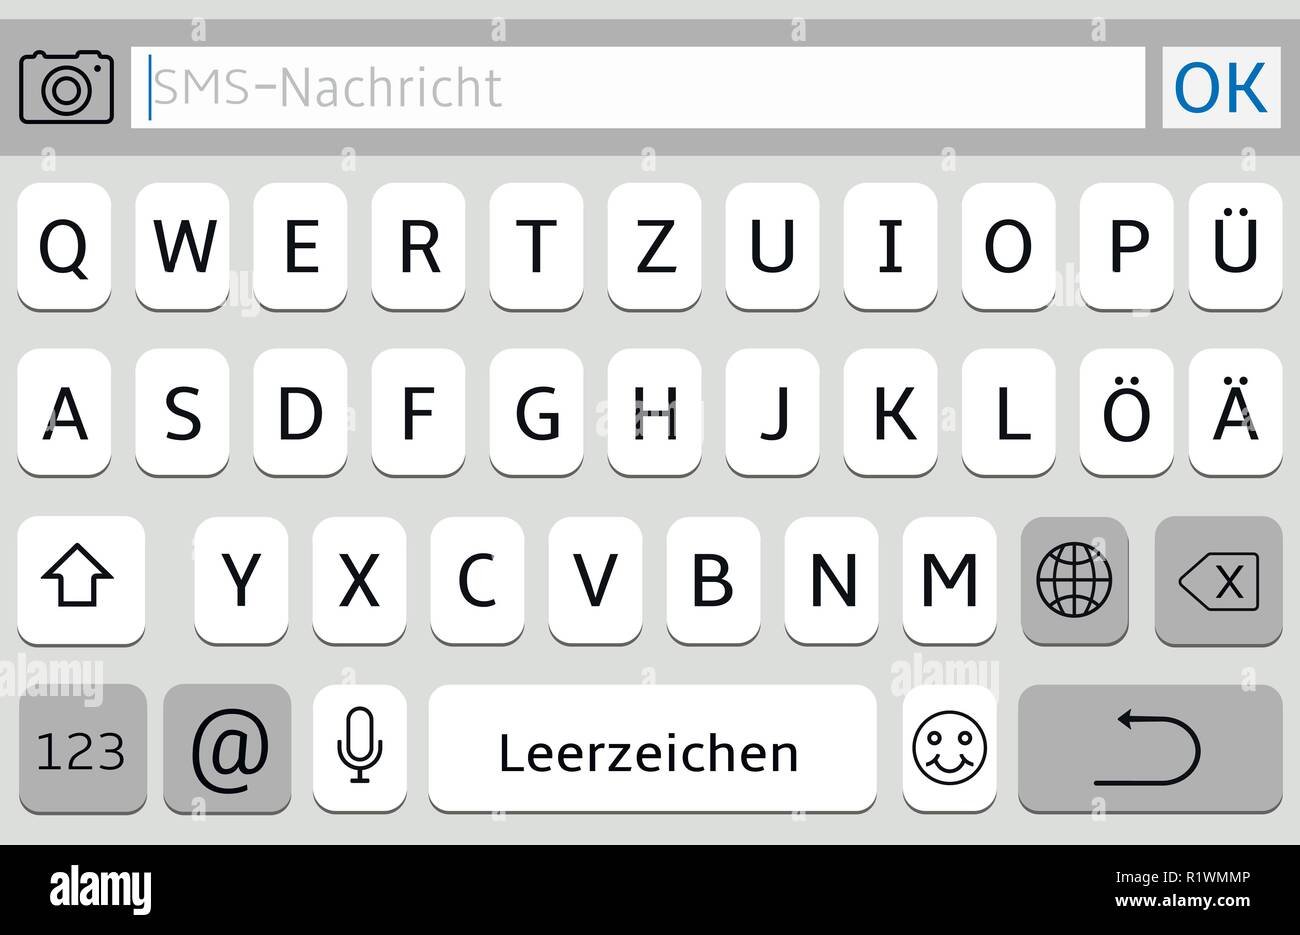 Germany Alphabet Virtual Keyboard For Mobile Phone Stock